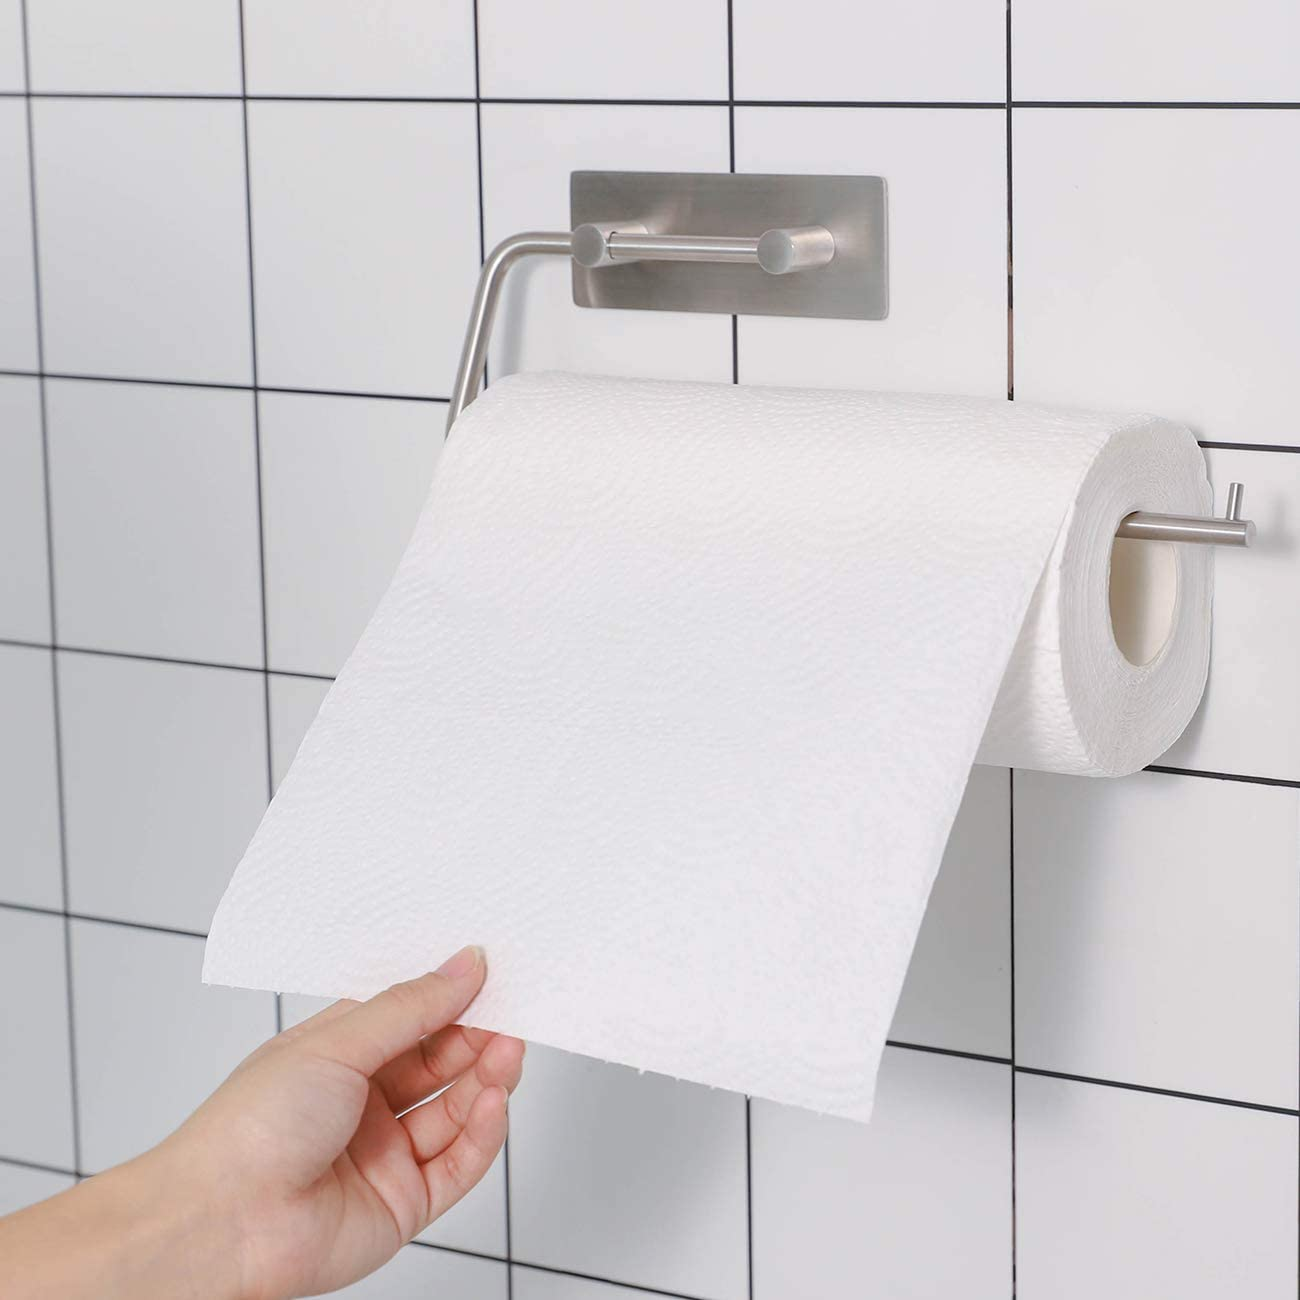 KES Paper Towel Holder 11 Inch Self Adhesive Kitchen Roll Dispenser Rustproof SUS304 Stainless Steel Wall Mount Brushed Finish A7073-2